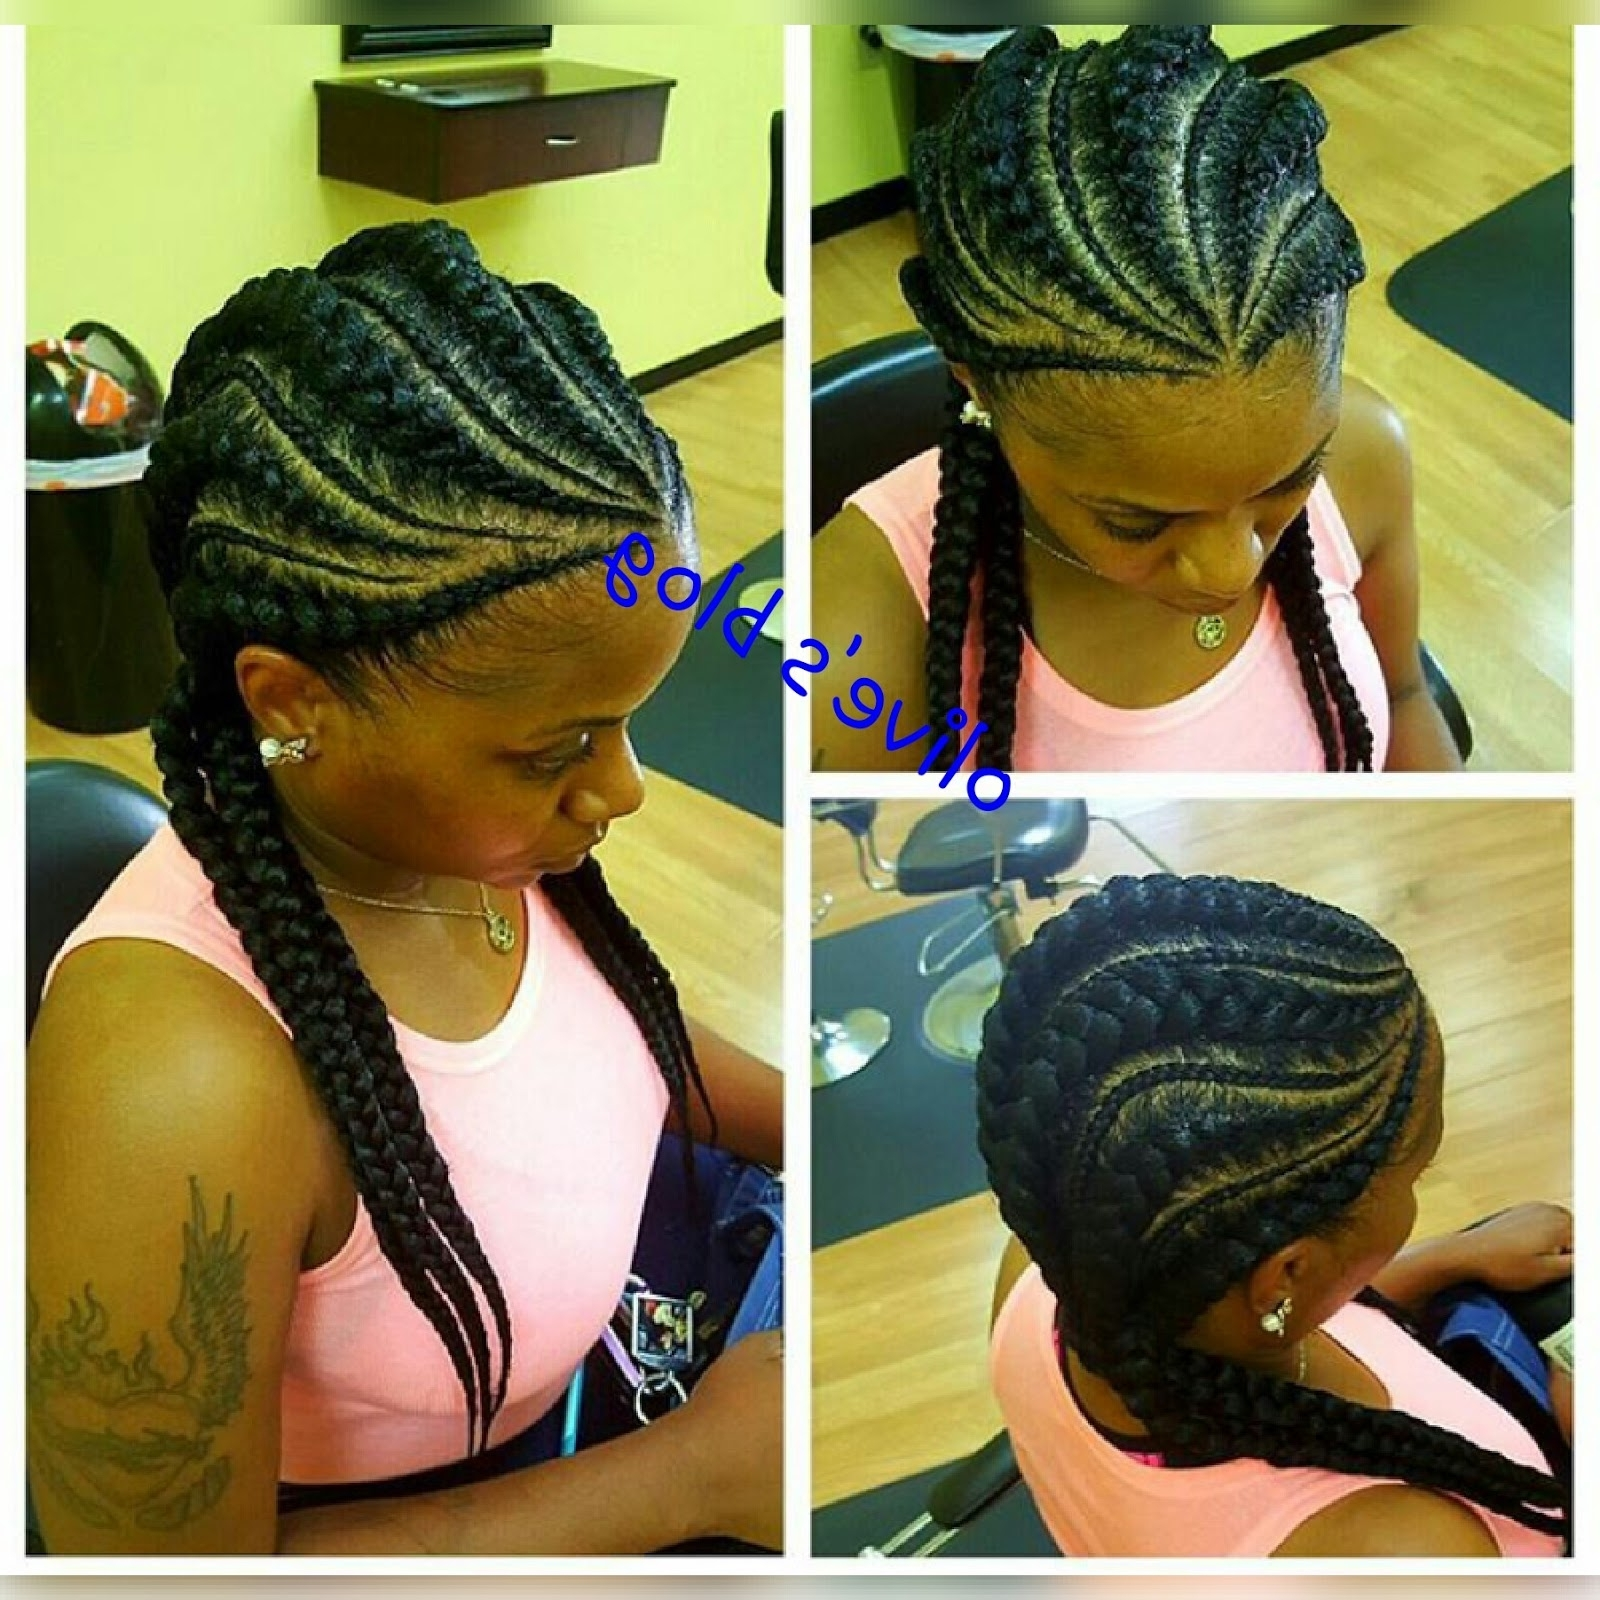 30 Creative And Gorgeous Cornrows Braids For Women (Photos) – Blogit With Regard To Current Creative Cornrows Hairstyles (View 2 of 15)